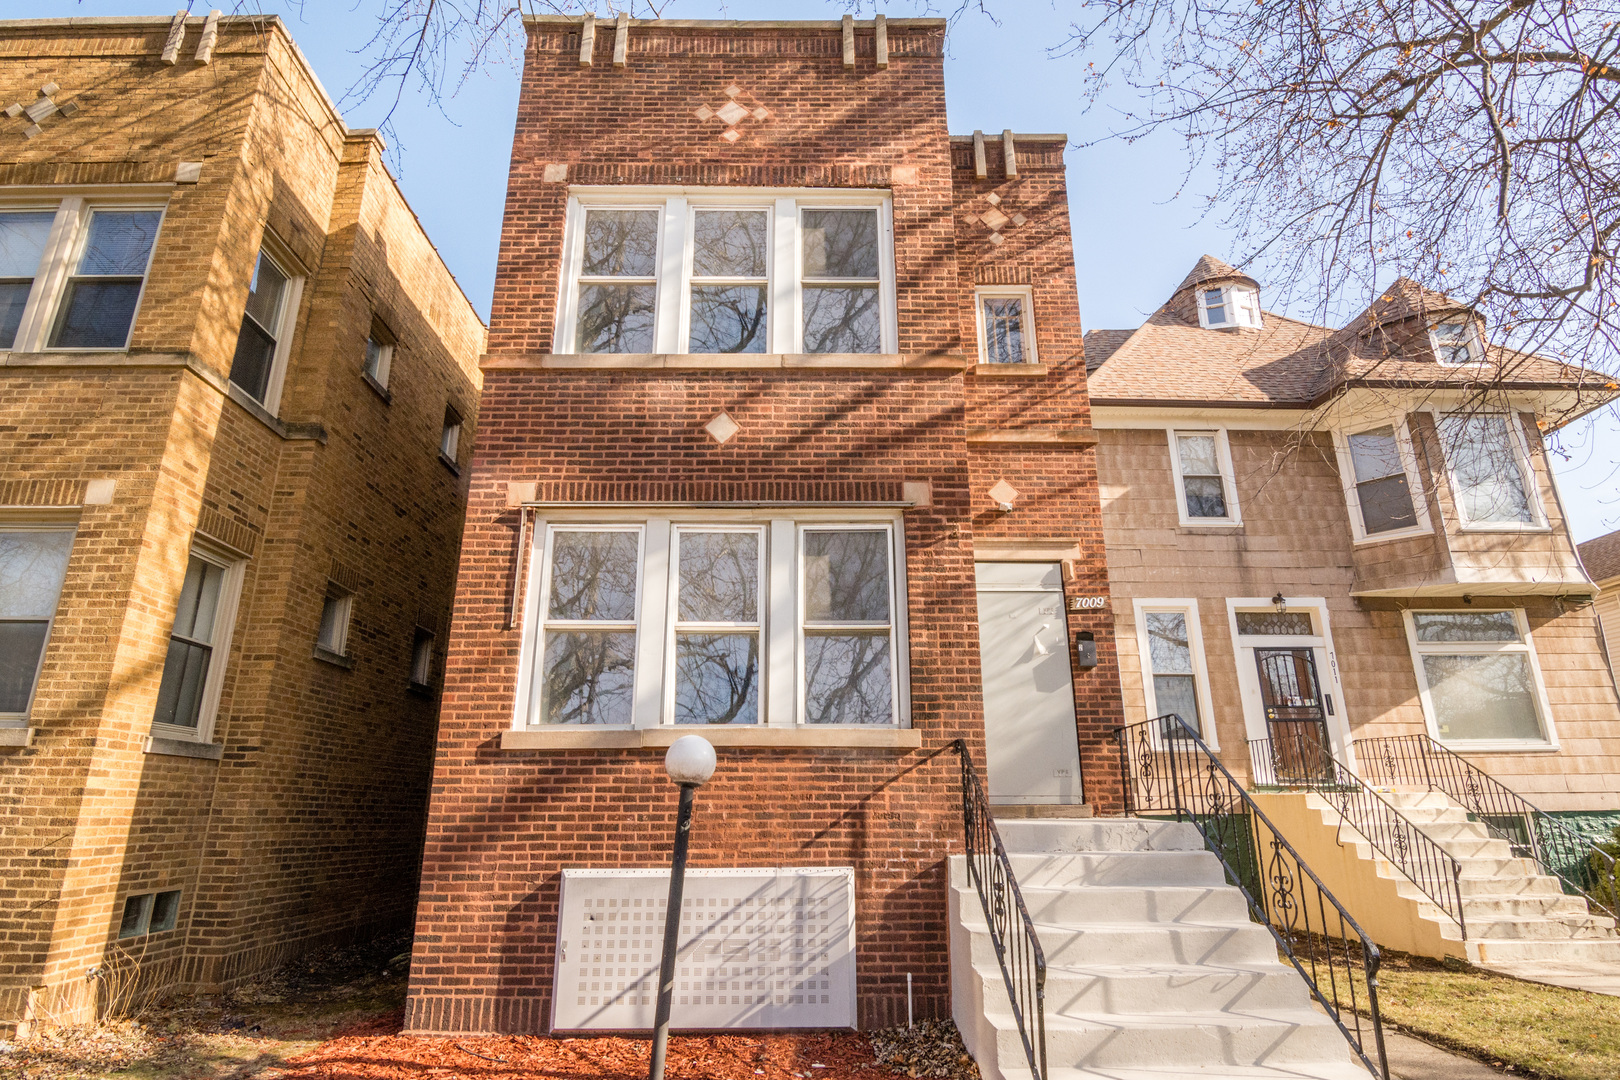 7009 S Indiana AVE, Chicago, IL, 60637, apartments (multi-unit) for sale